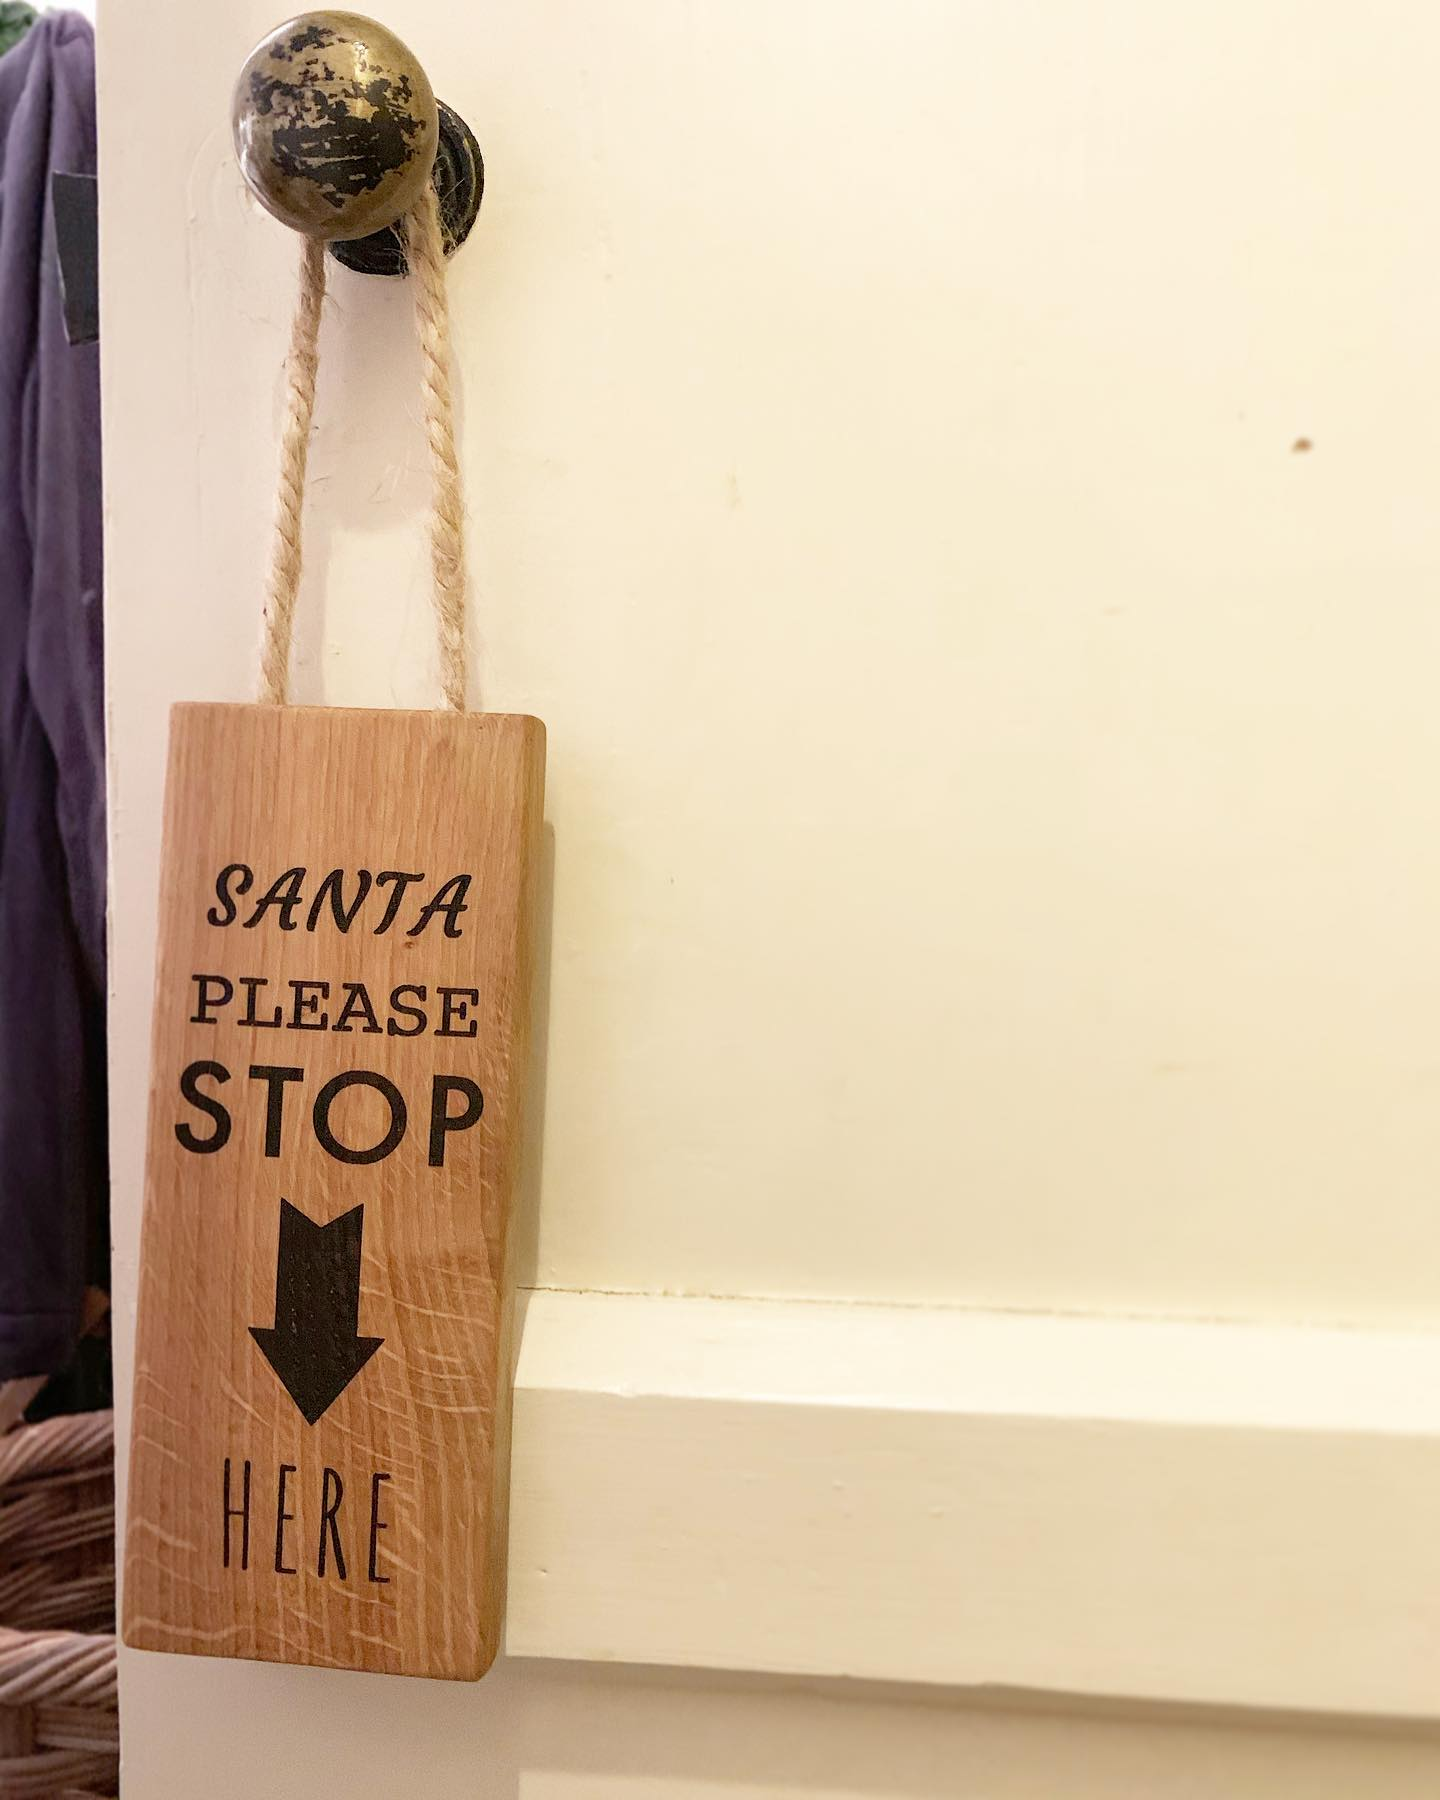 A few Festive products have been on our to-do list for some time now and we're excited to share something we finished today. This oak Christmas sign will be available soon on our website! We'll be announcing when they it goes live along with a few other seasonal products. ...#santastophere #festive #christmas #newproduct #seasonal #handcrafted #homewares #homedecor #falalalala #home #sign #christmasdecs